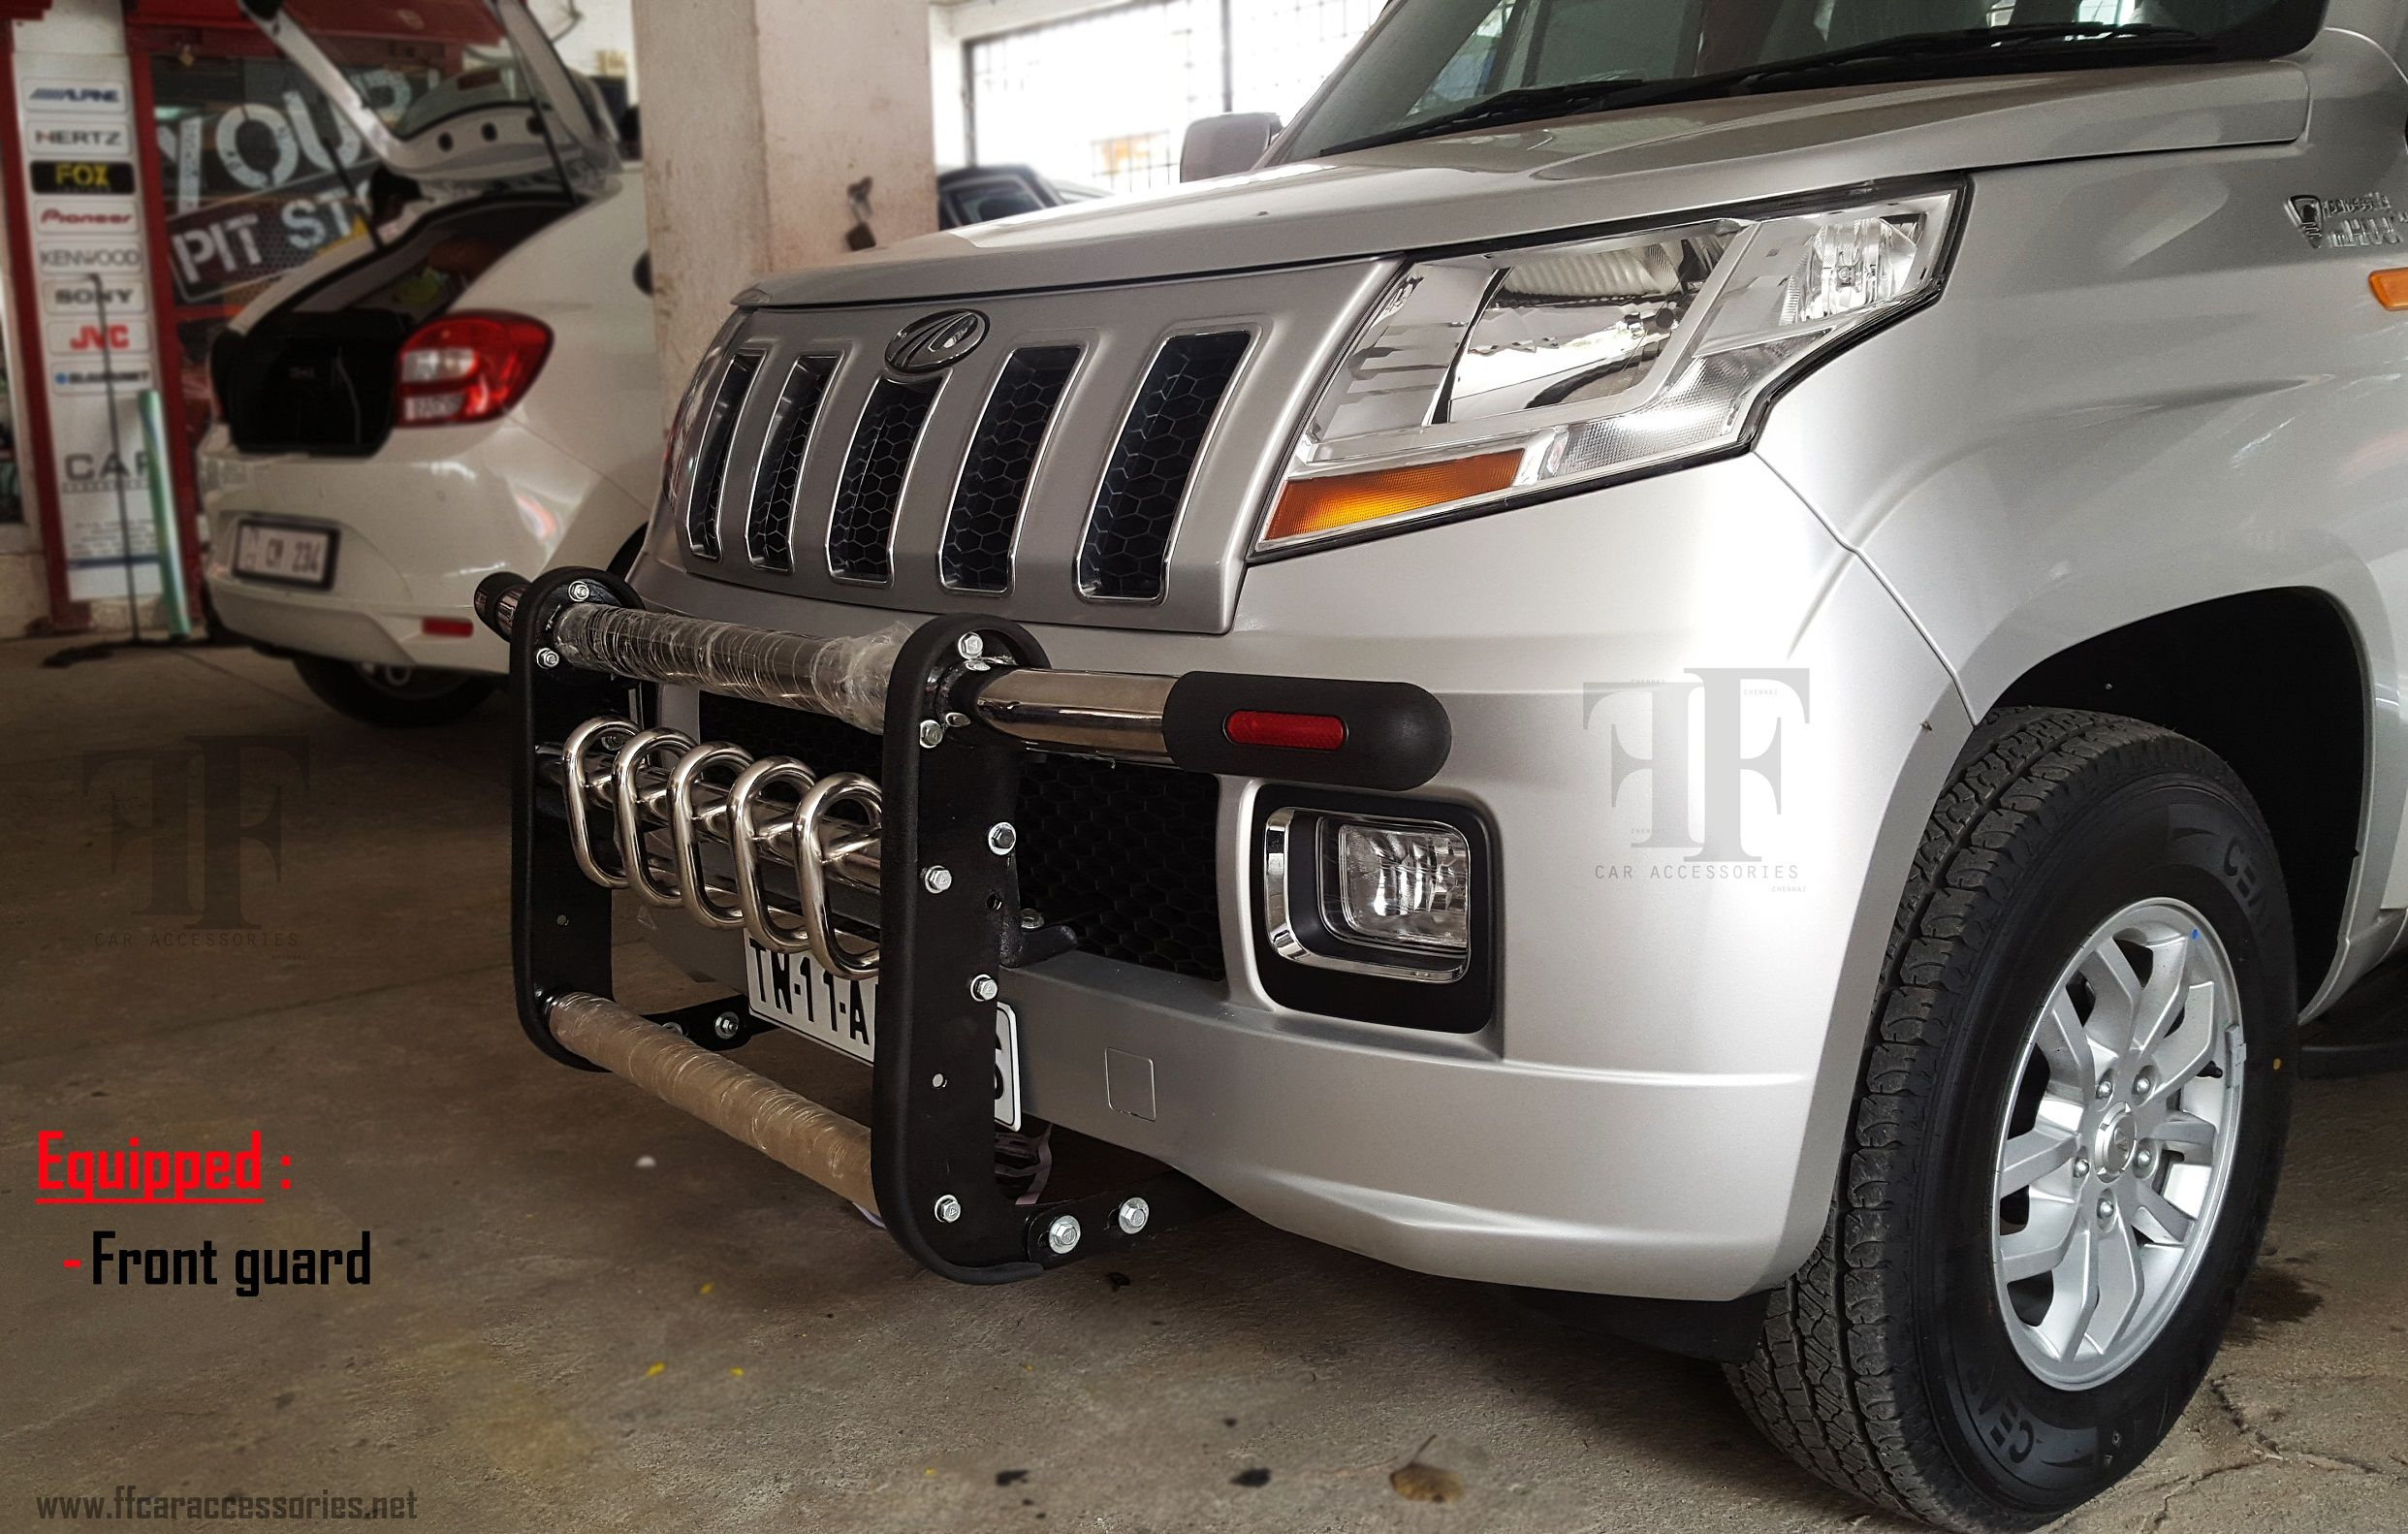 Century front guard installed on this TUV300 Car